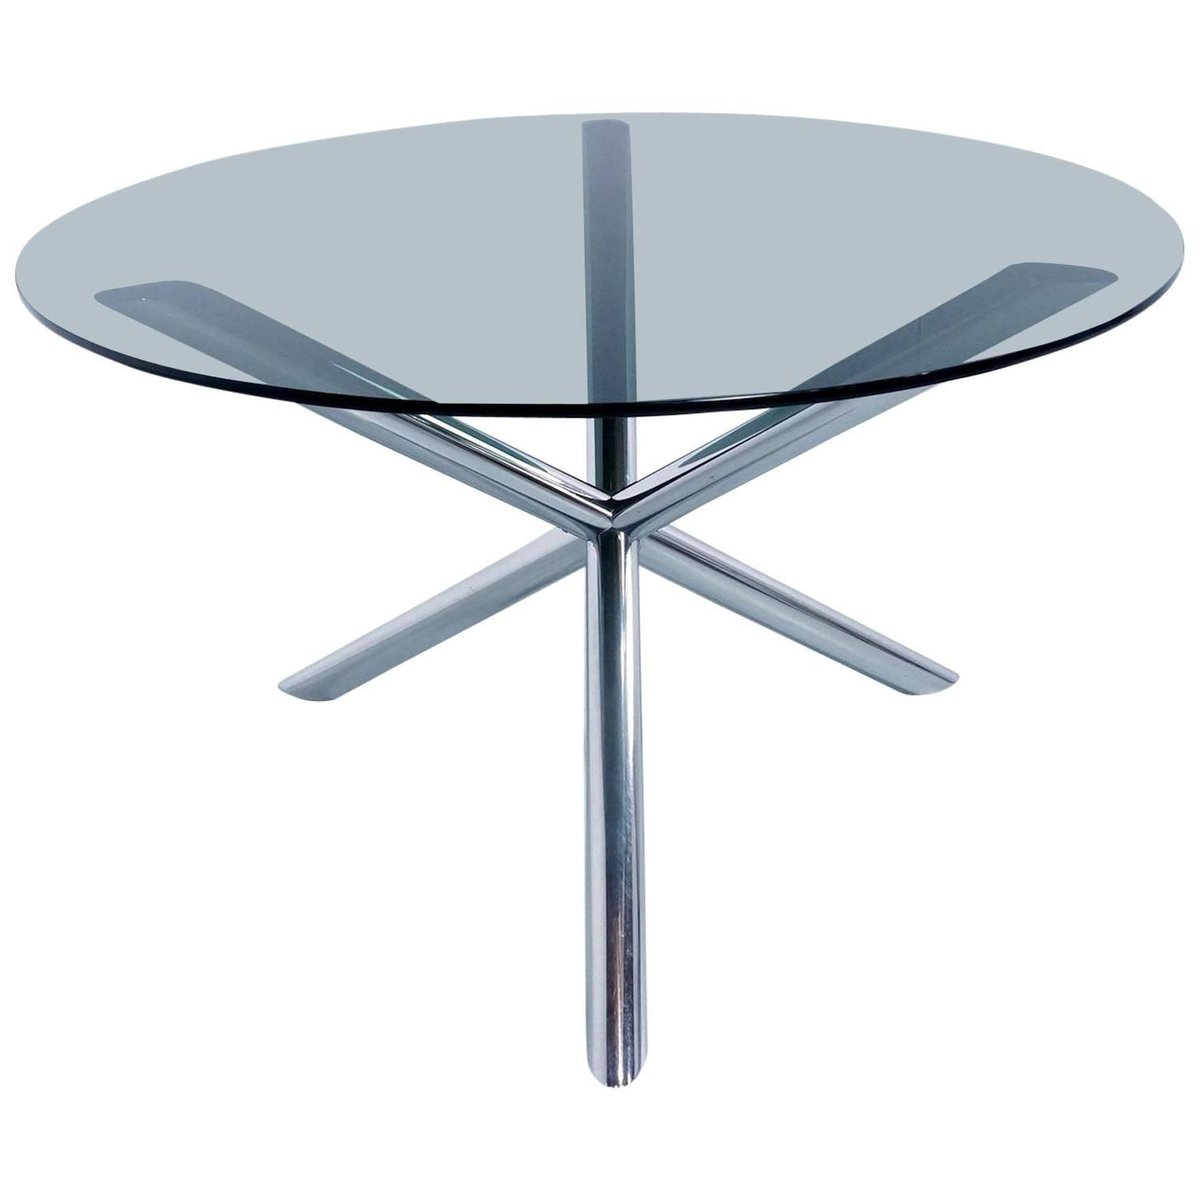 Dining table in chrome and smoked glass by roche bobois 1970s for sale at pamono for Table ardoise roche bobois